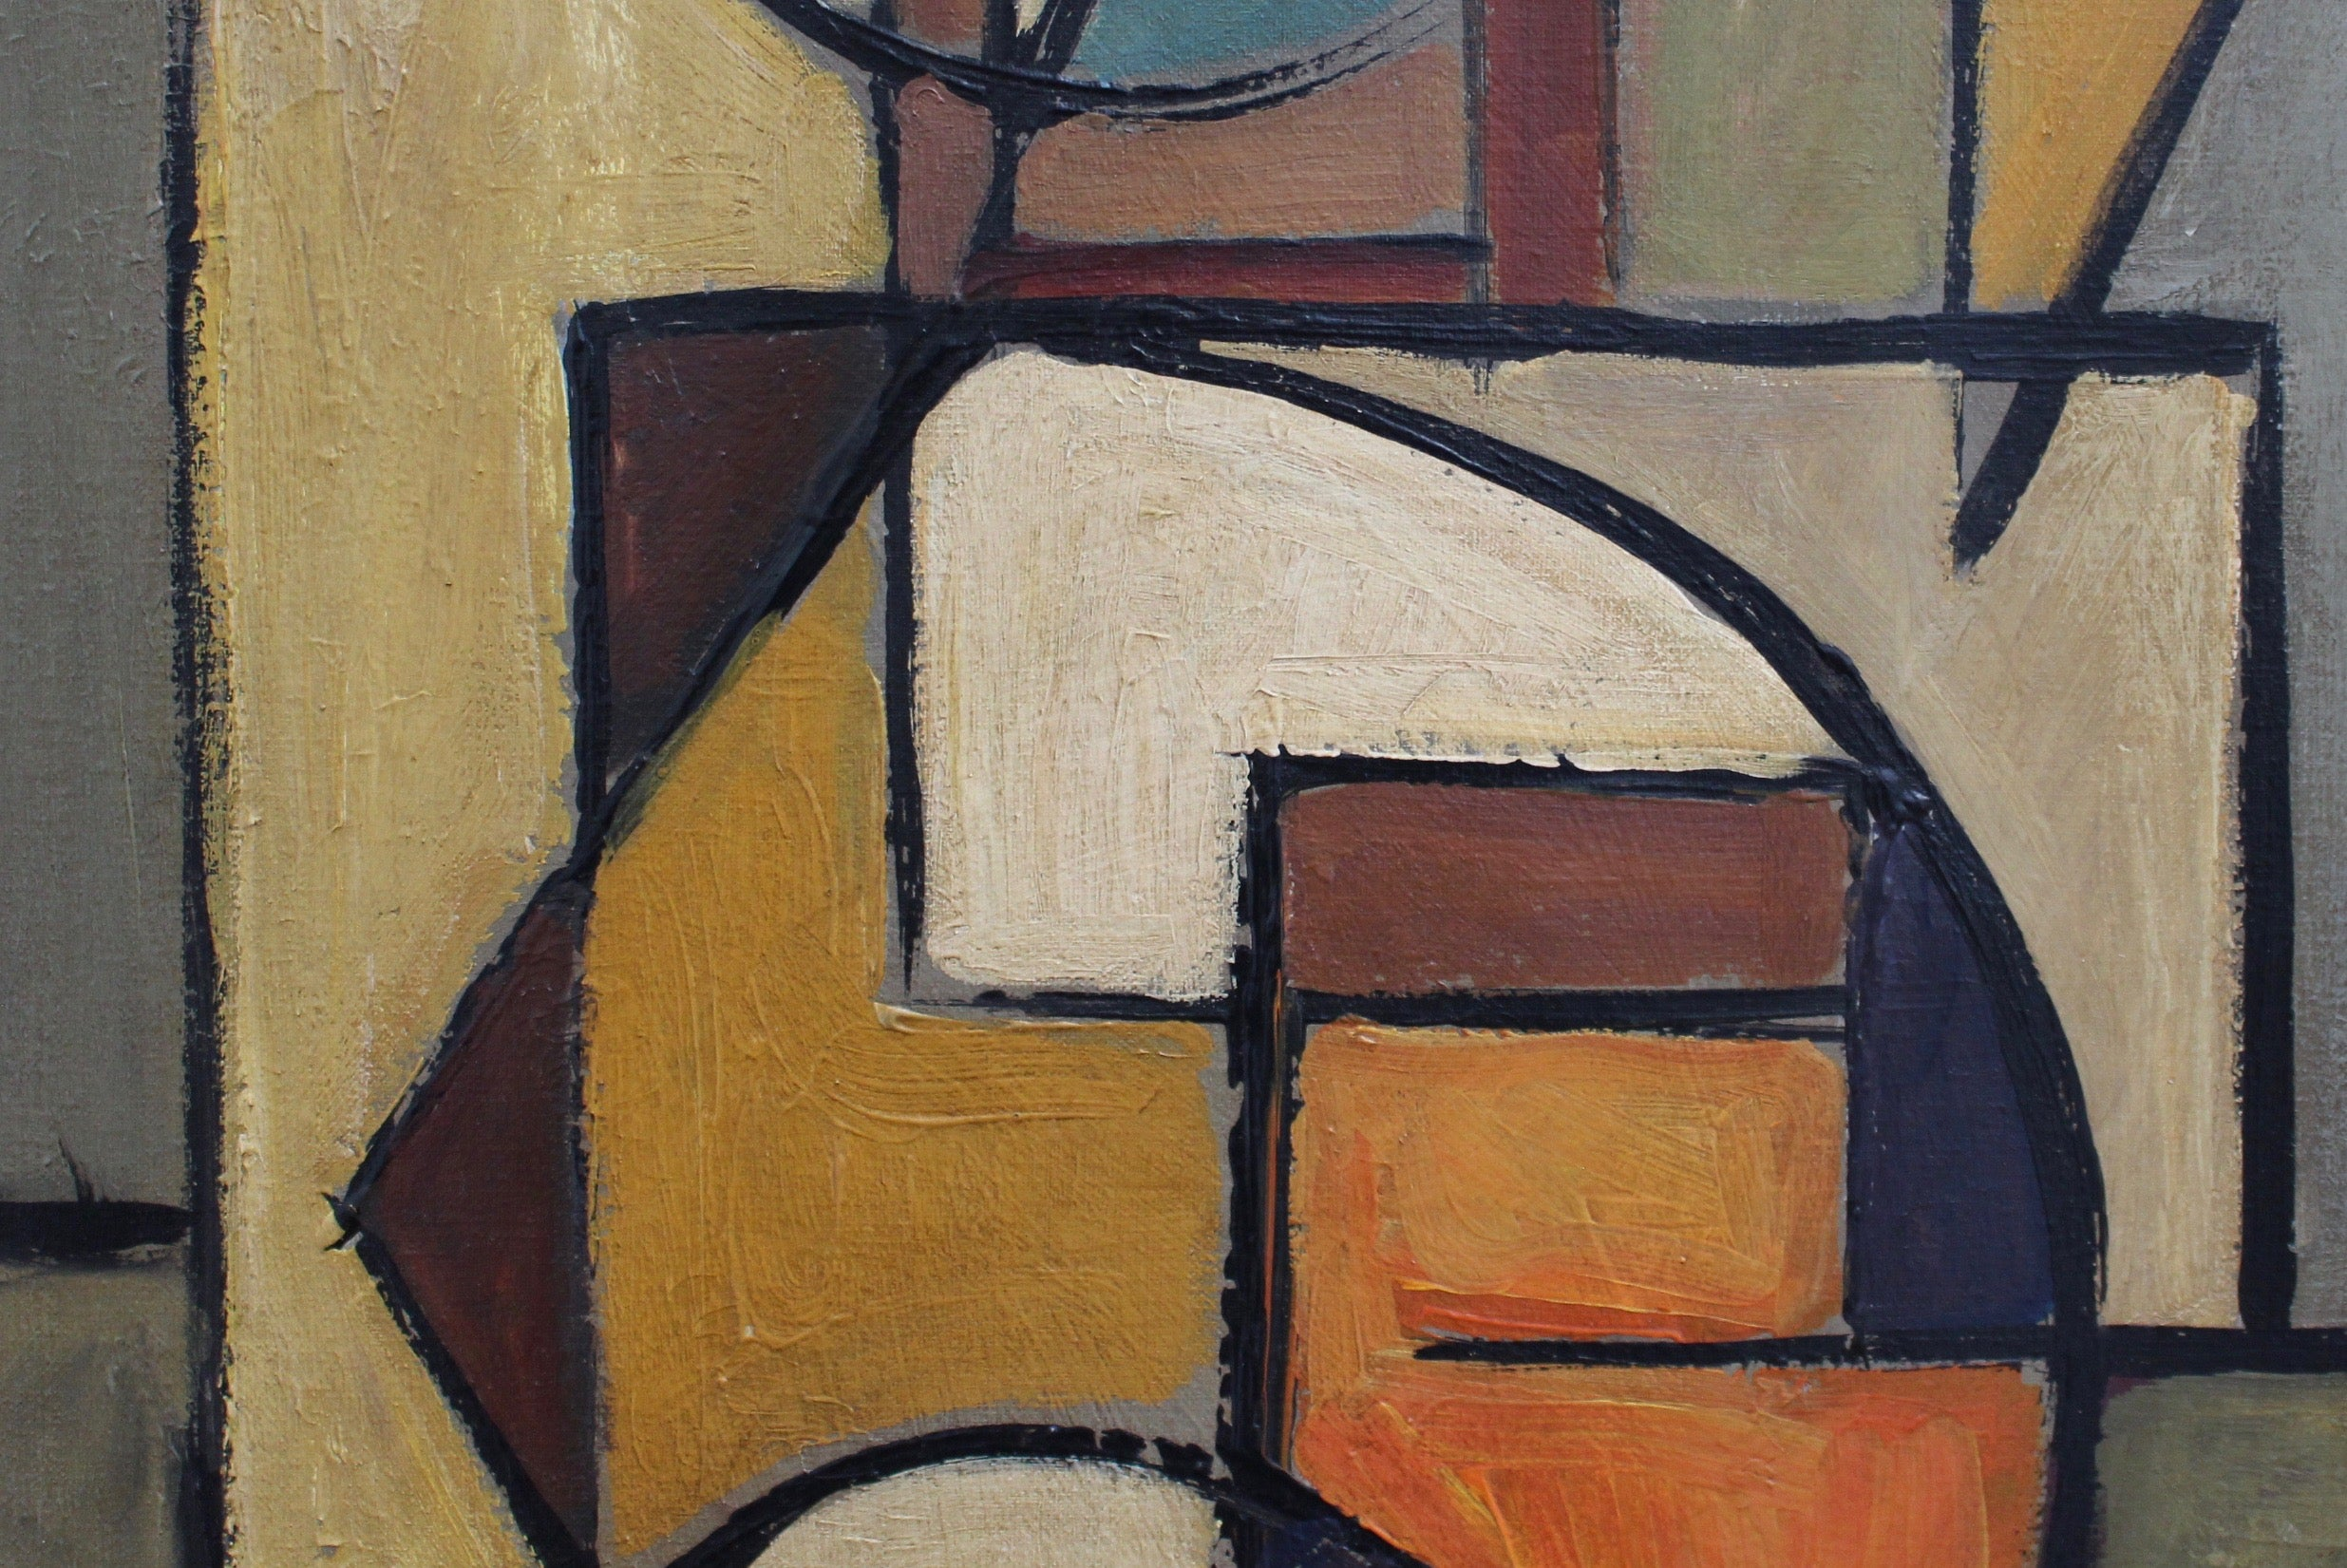 'Abstract Composition in Colour' by Lemaire (circa 1960s)